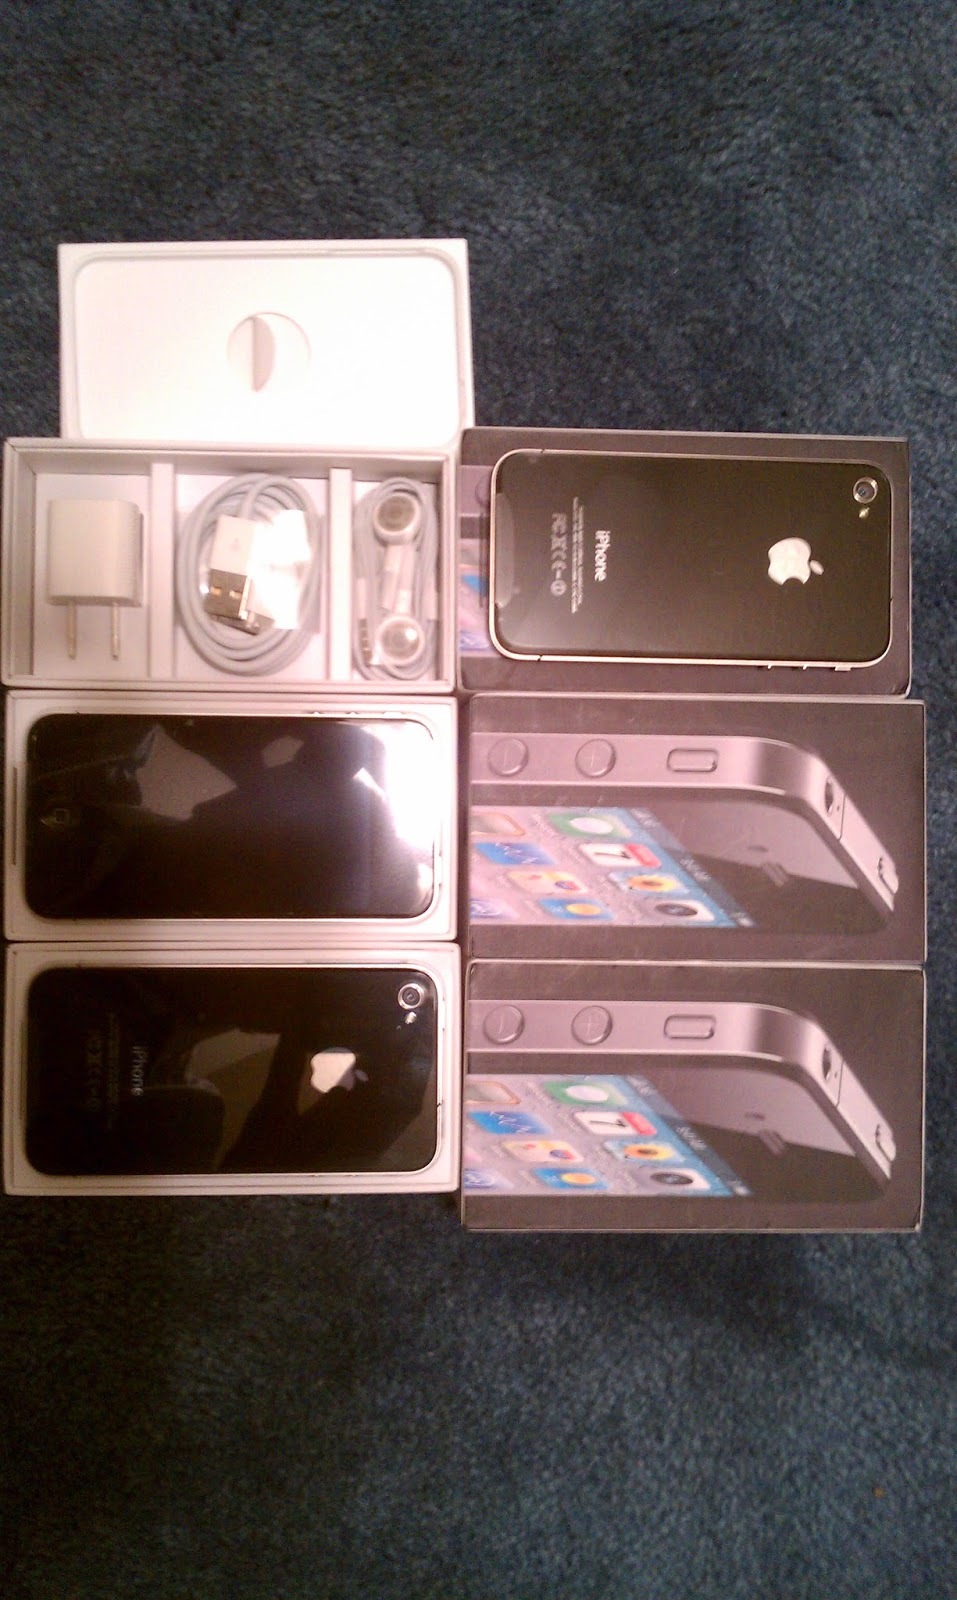 Apple iPhone, proof of stock, wholesaler, MidwestGSM legitimate,